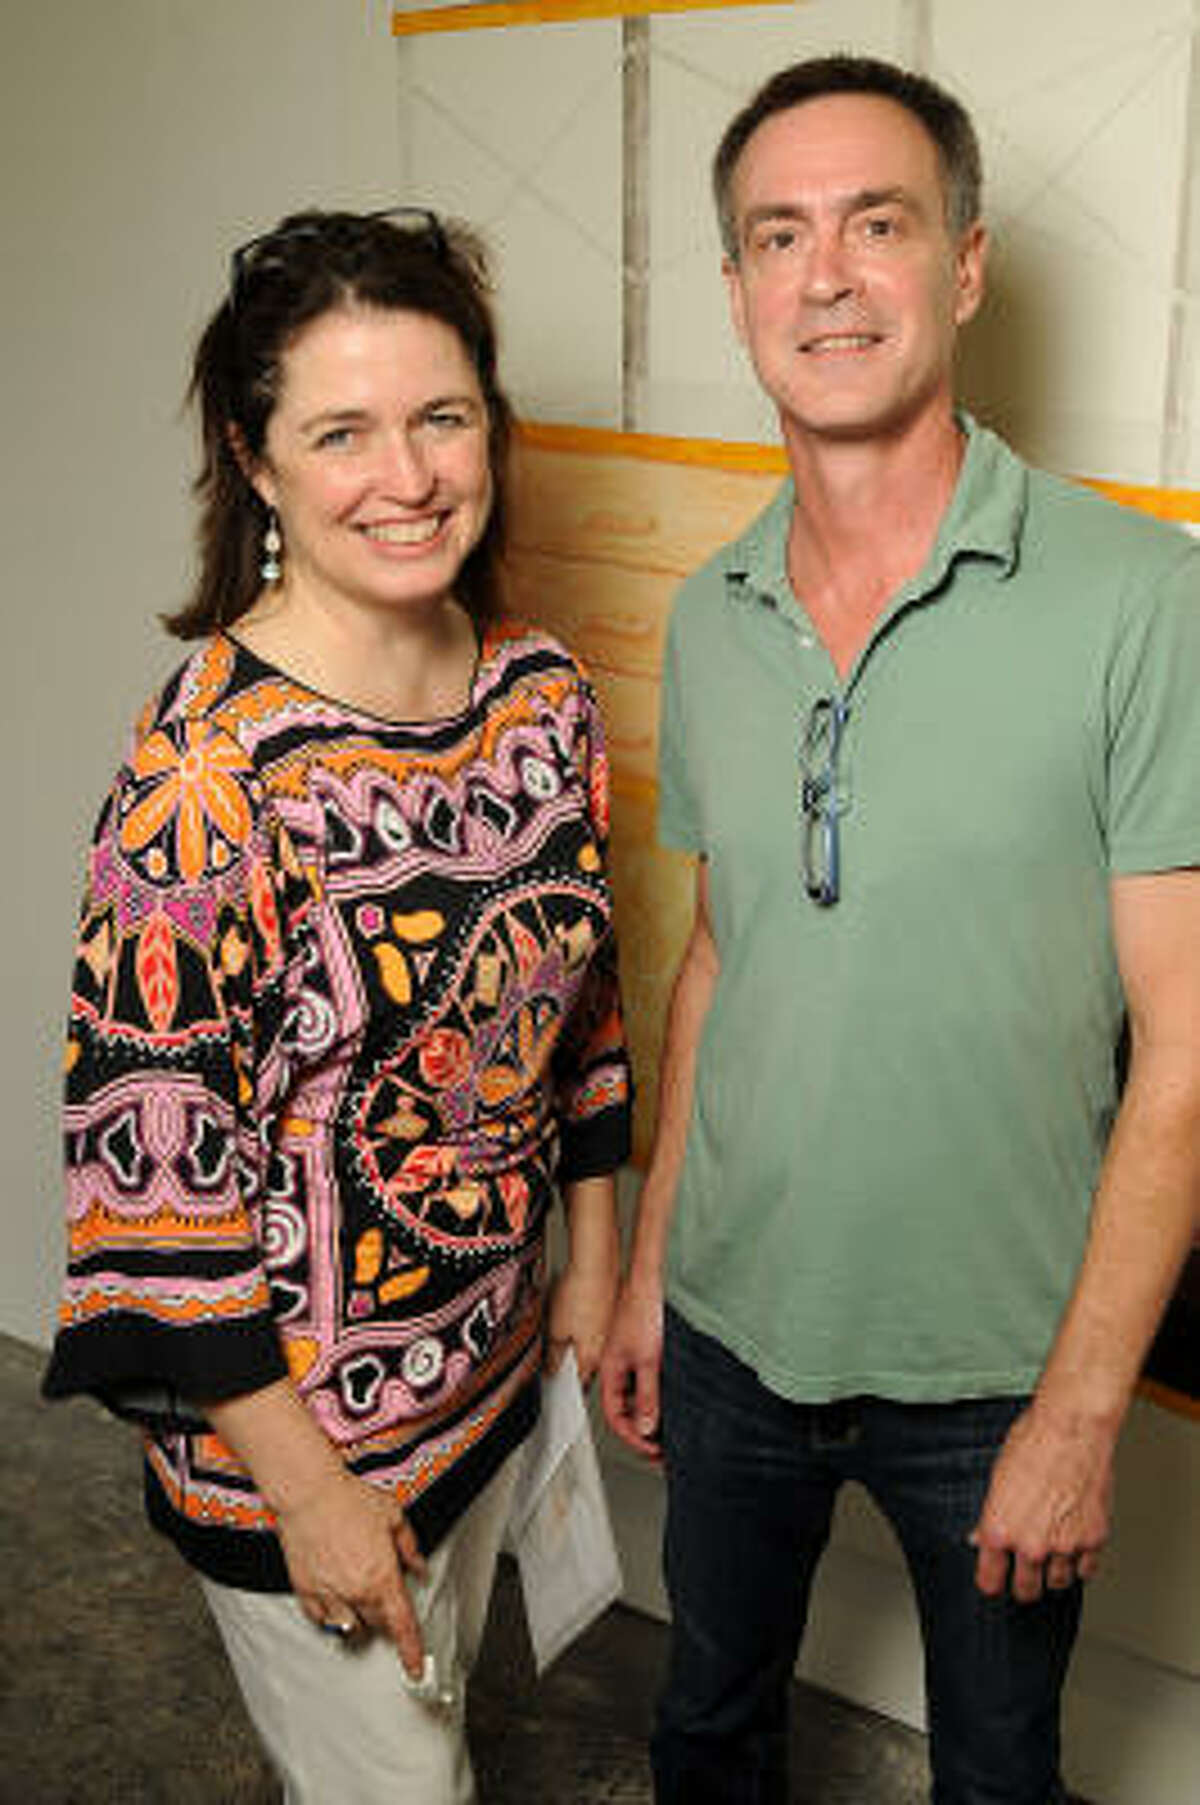 Kerry Inman and Patrick Reynolds